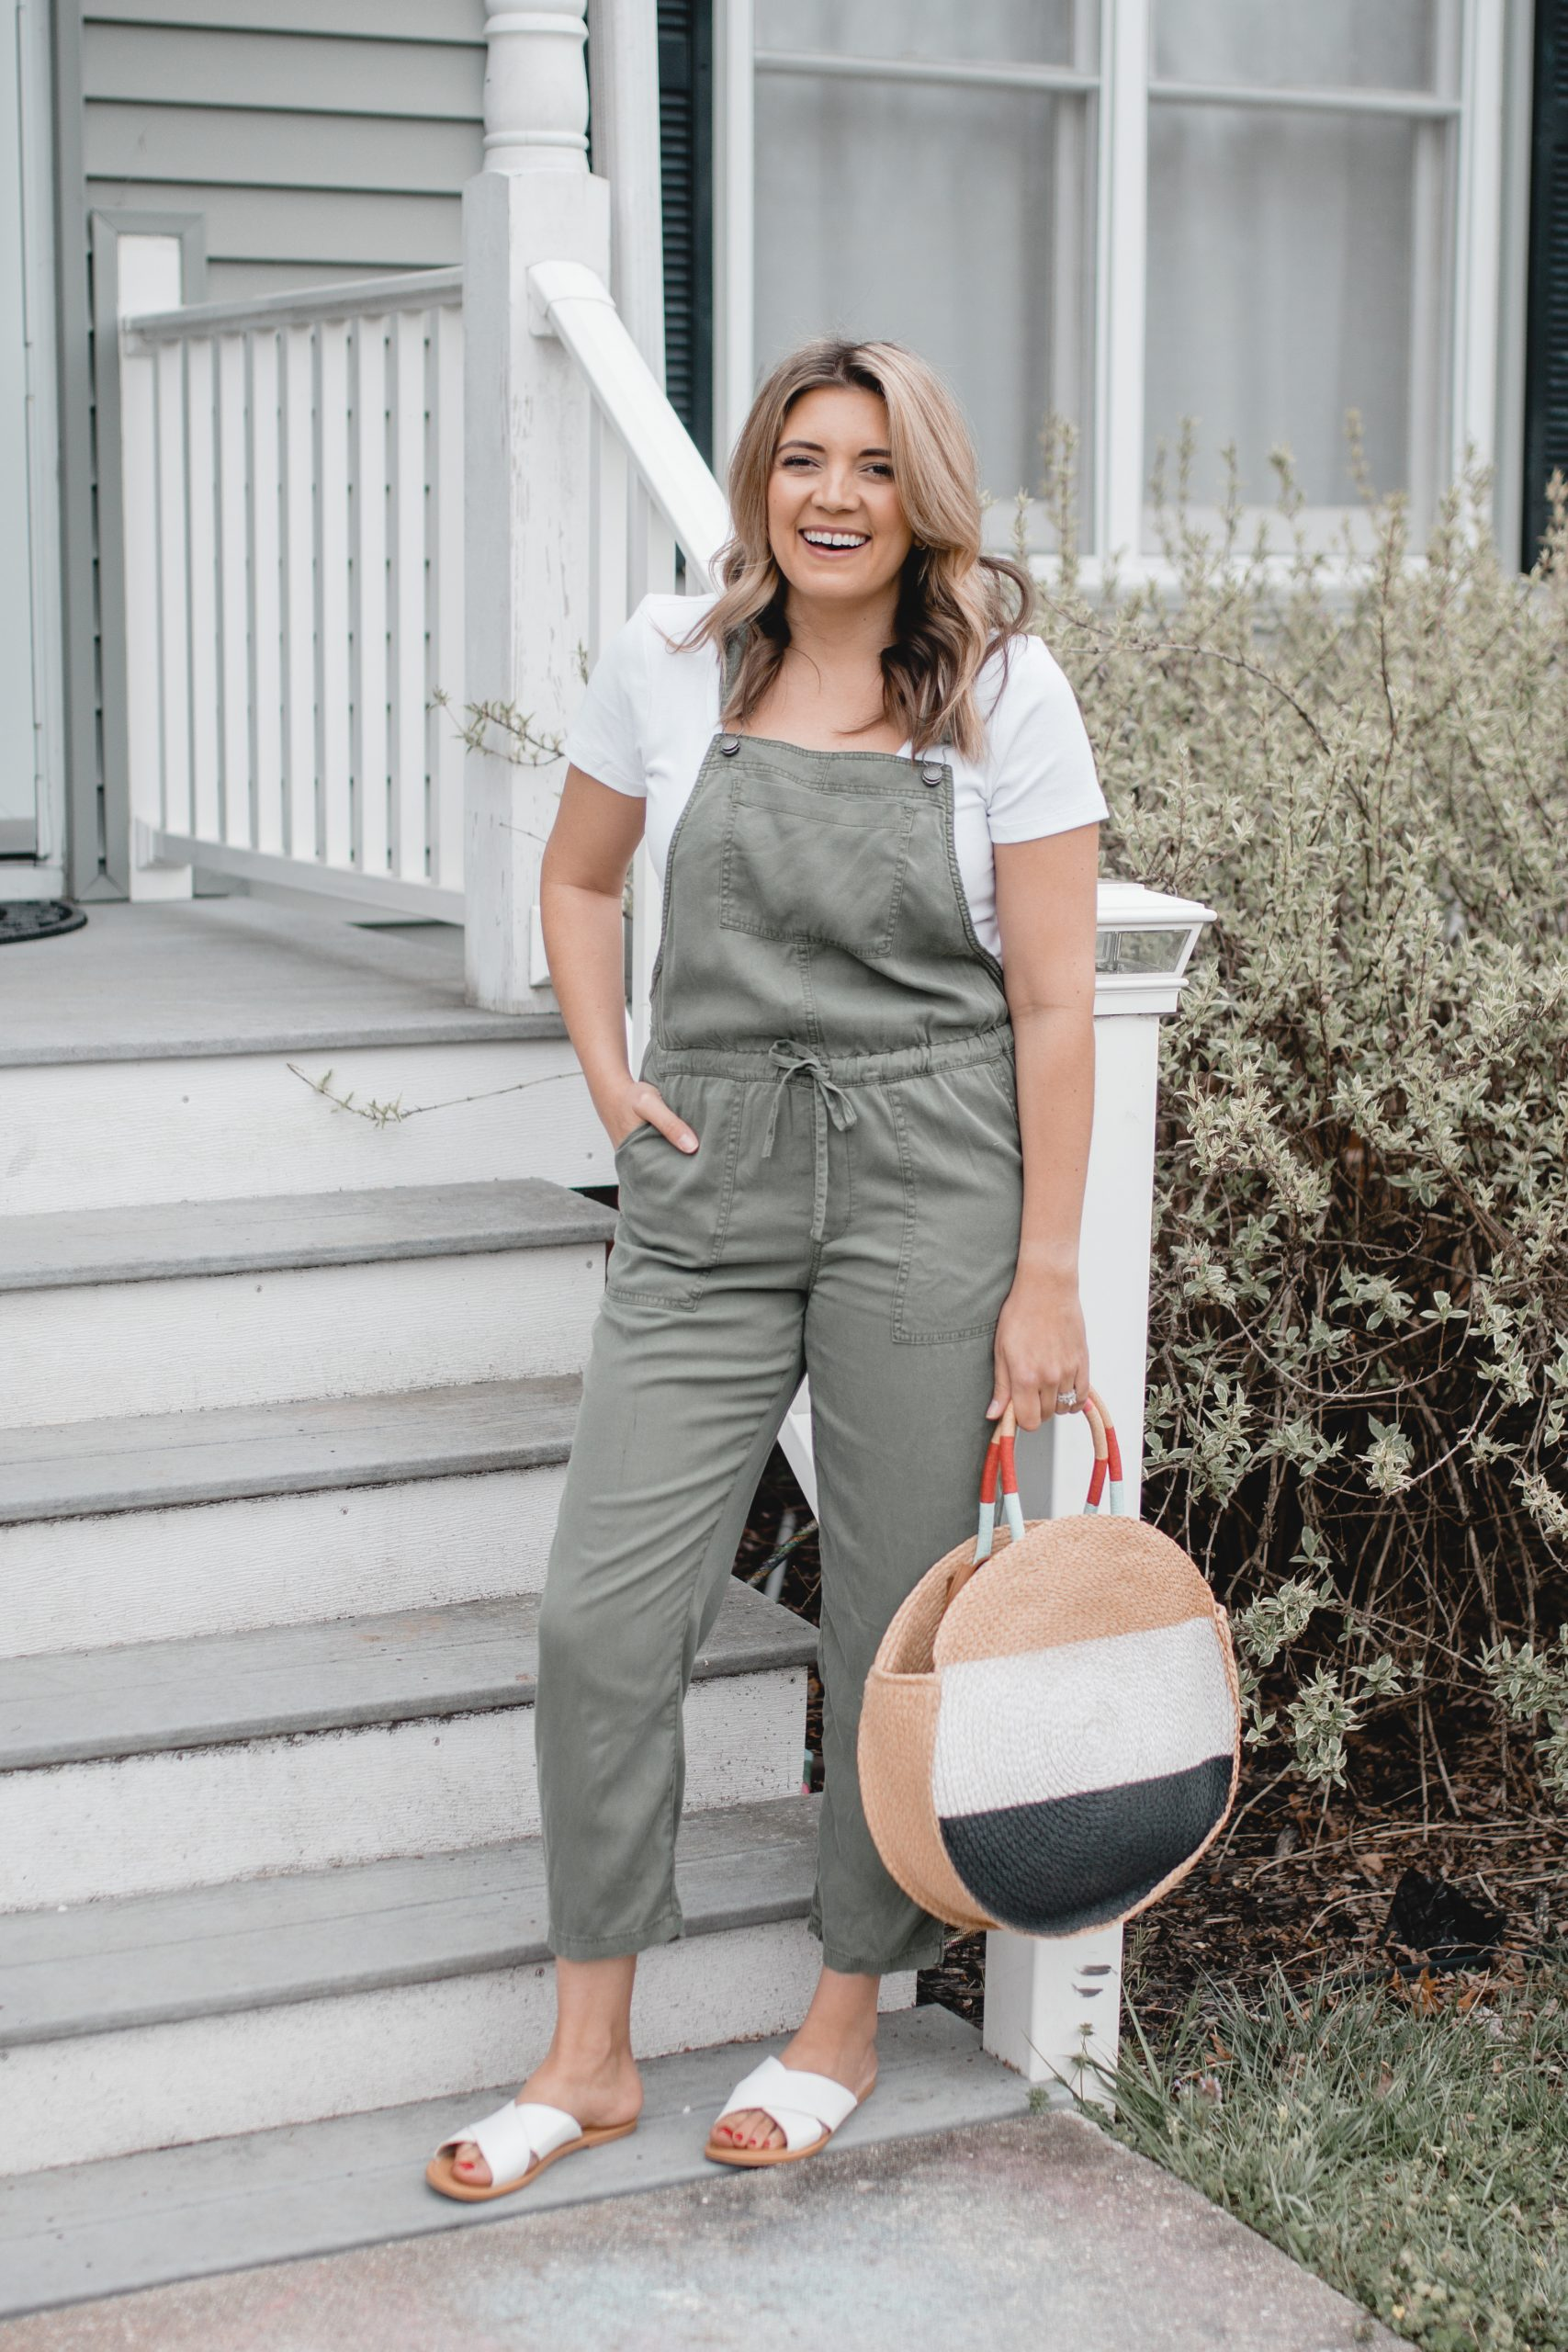 Virginia blogger, Lauren Dix, shares soft overalls for spring!